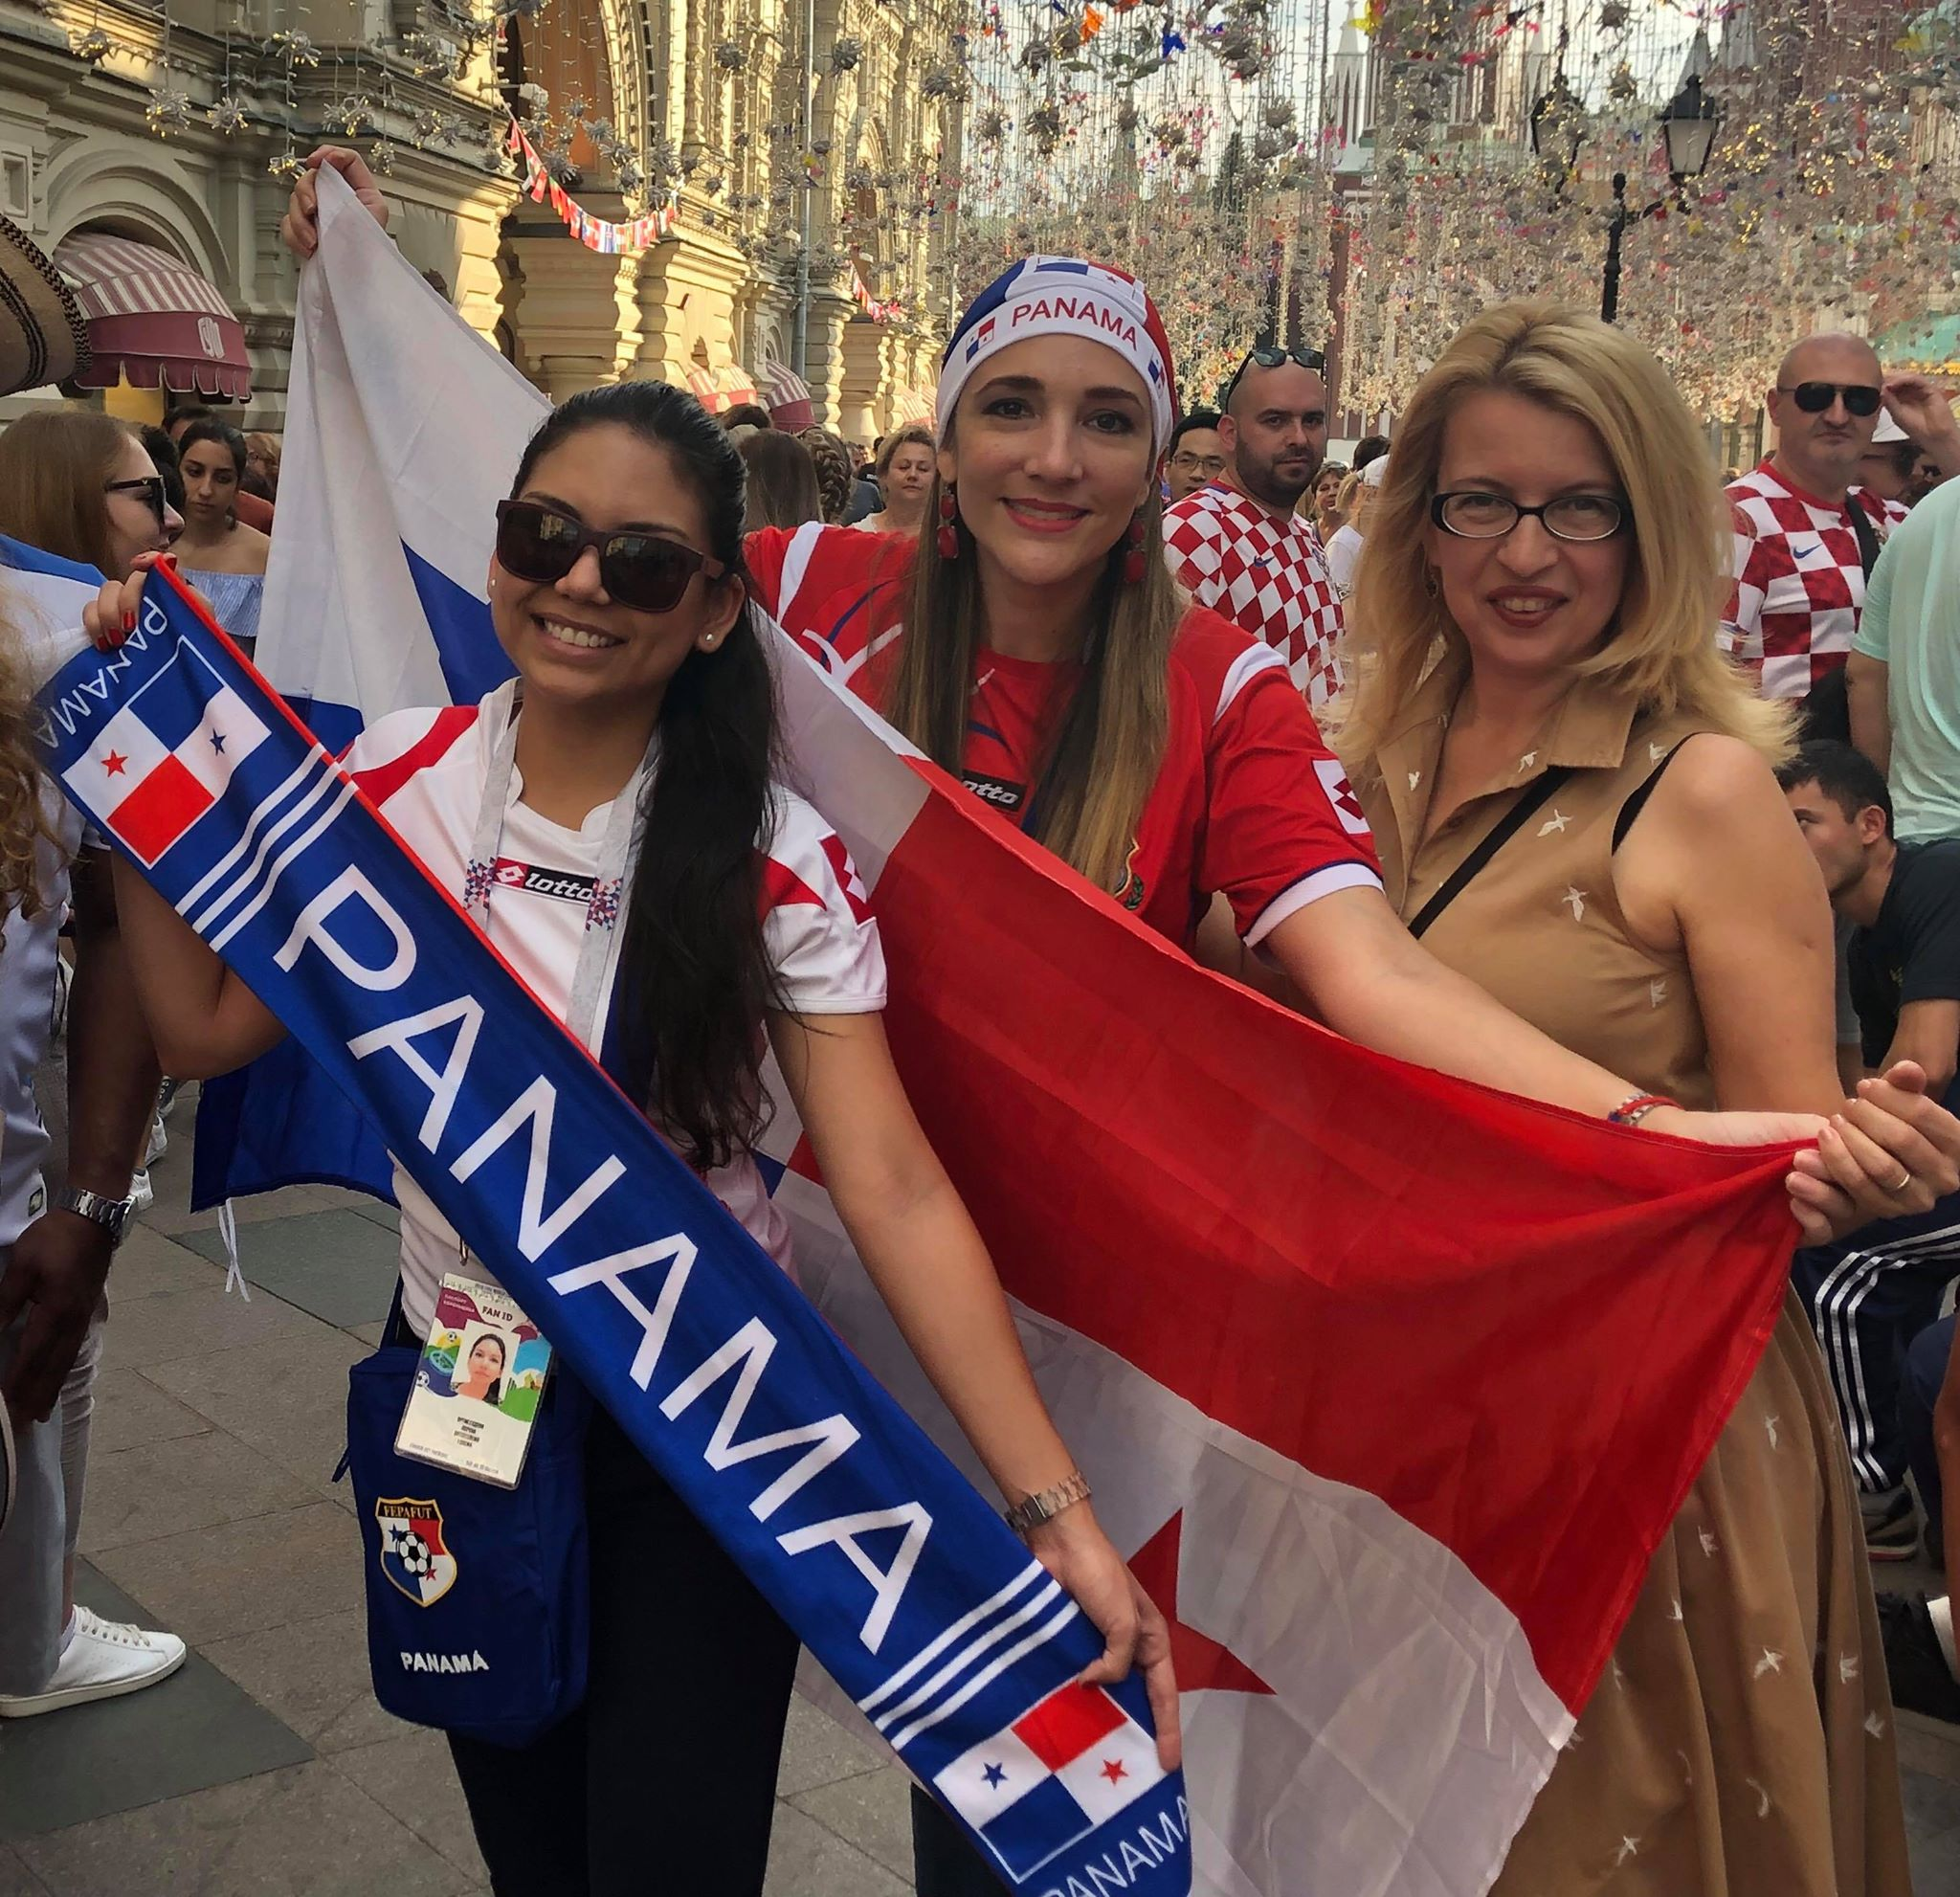 World Cup 2018 fans in Moscow 7